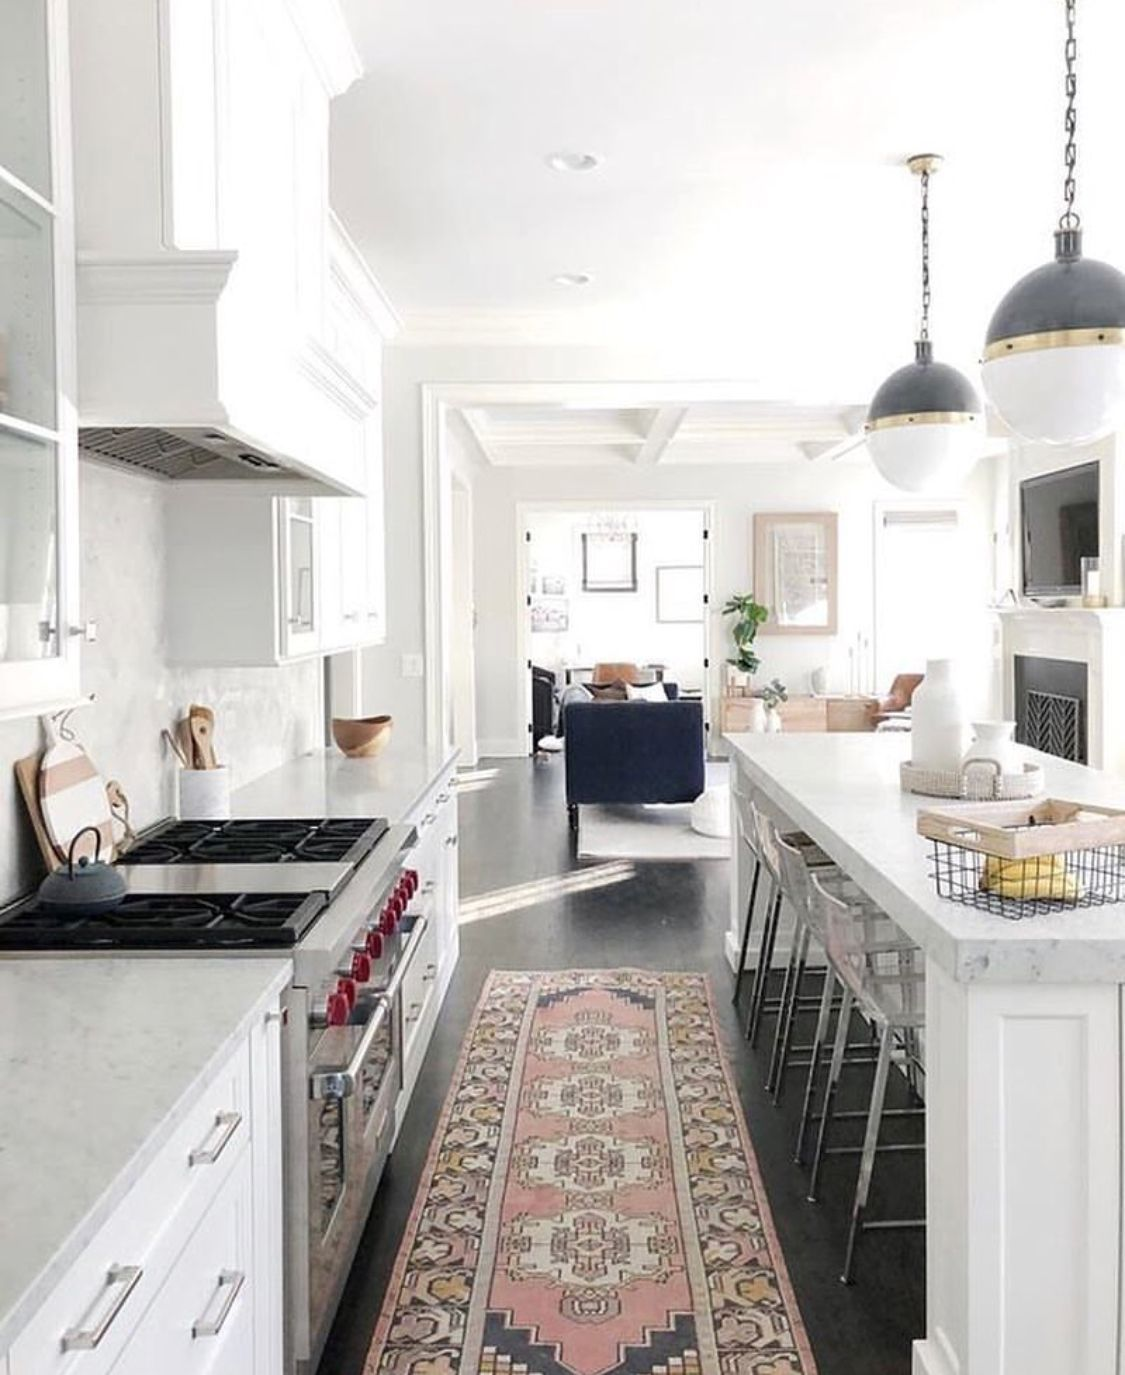 Most Popular Kitchen Design Ideas on 2018 & How to